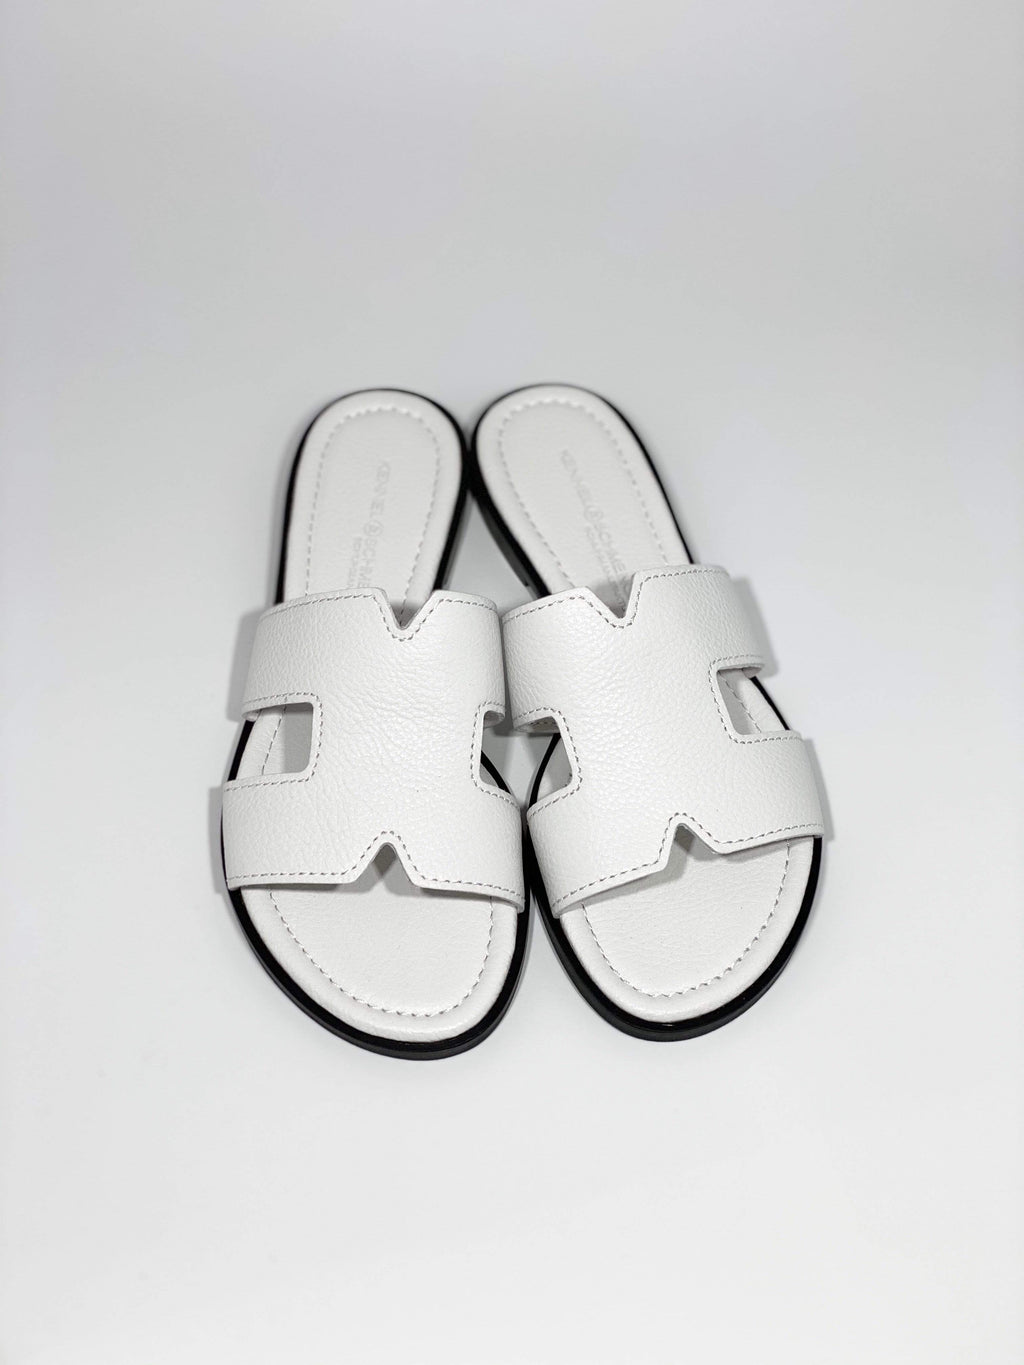 Kennel & Schmenger Shoes Kennel & Schmenger Kito White Flat Sandal  31-96650-223 izzi-of-baslow